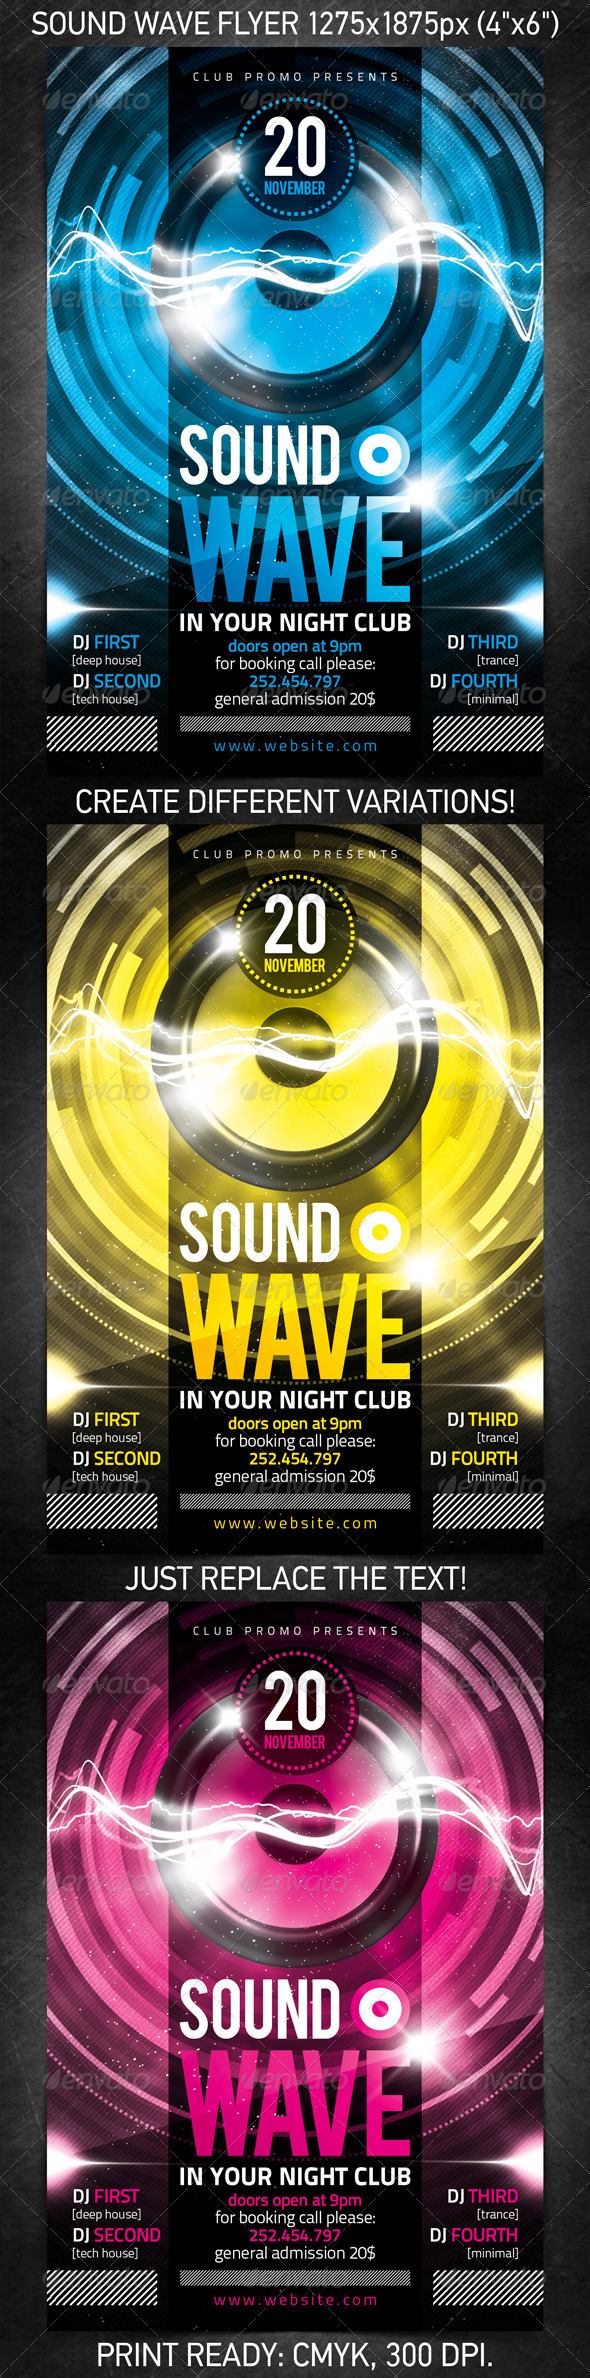 GraphicRiver Sound Wave Party Flyer 779012